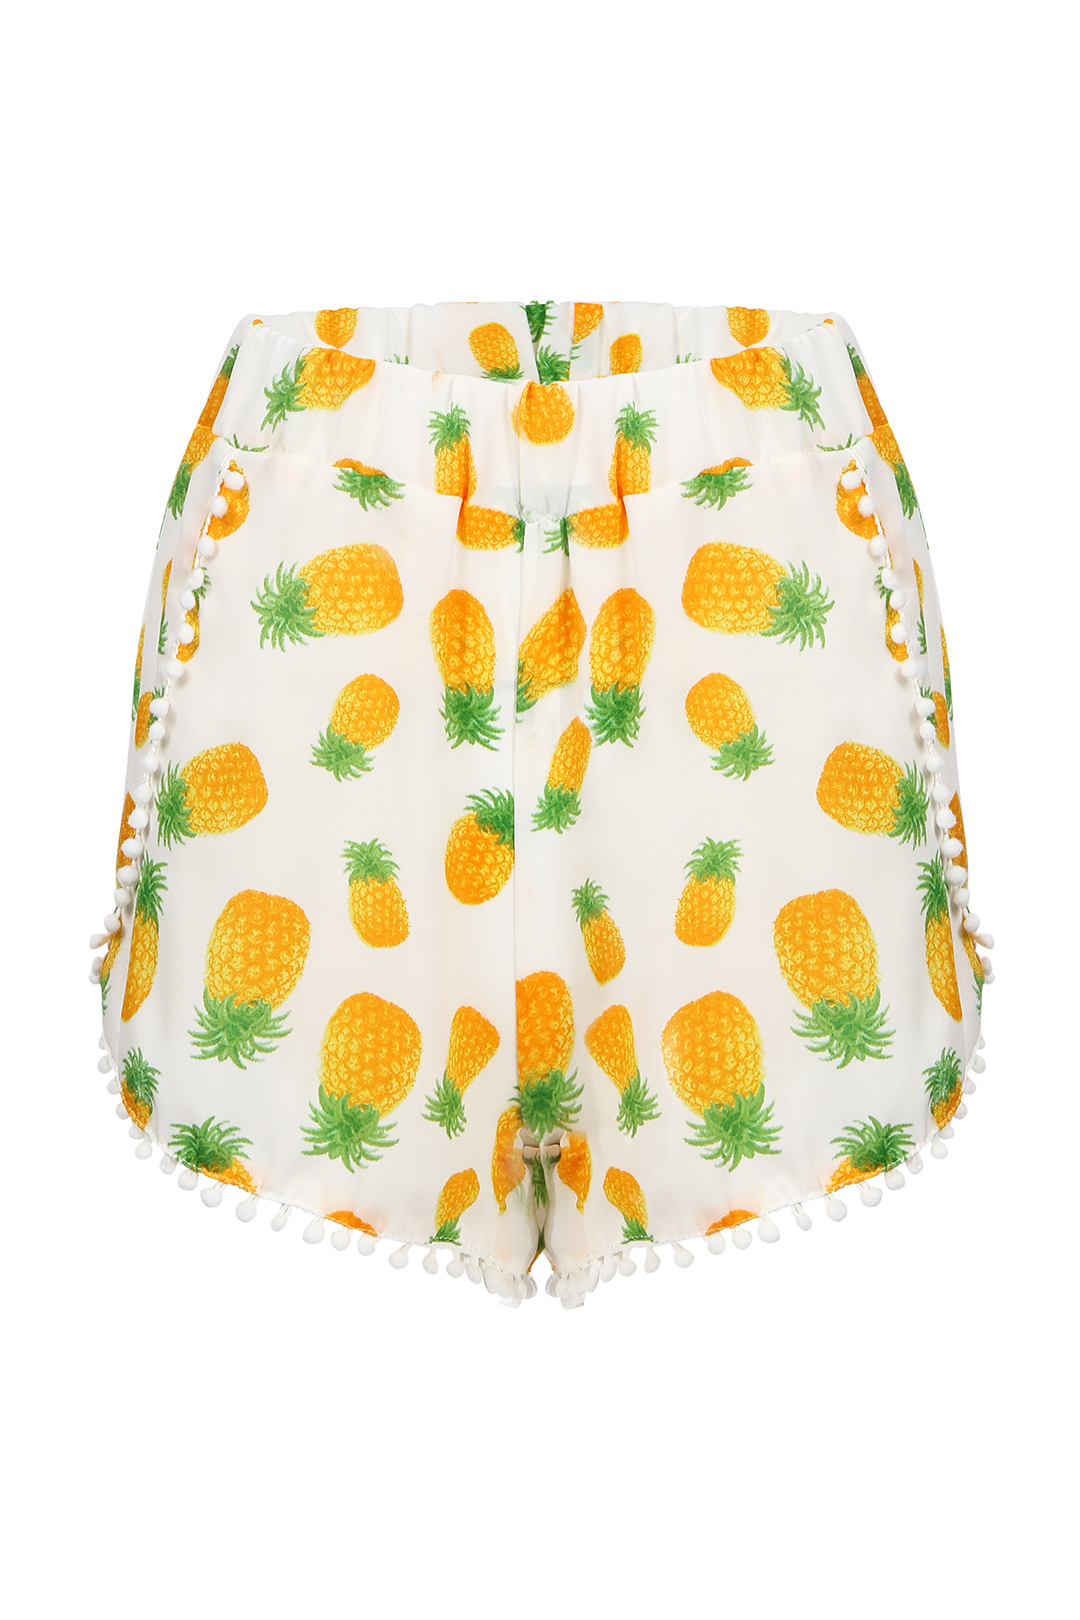 Semi-sheer Printing Pattern Shorts with Pom Pom Trim jp 48 9 фигурка девочка бисквит pavone 877937